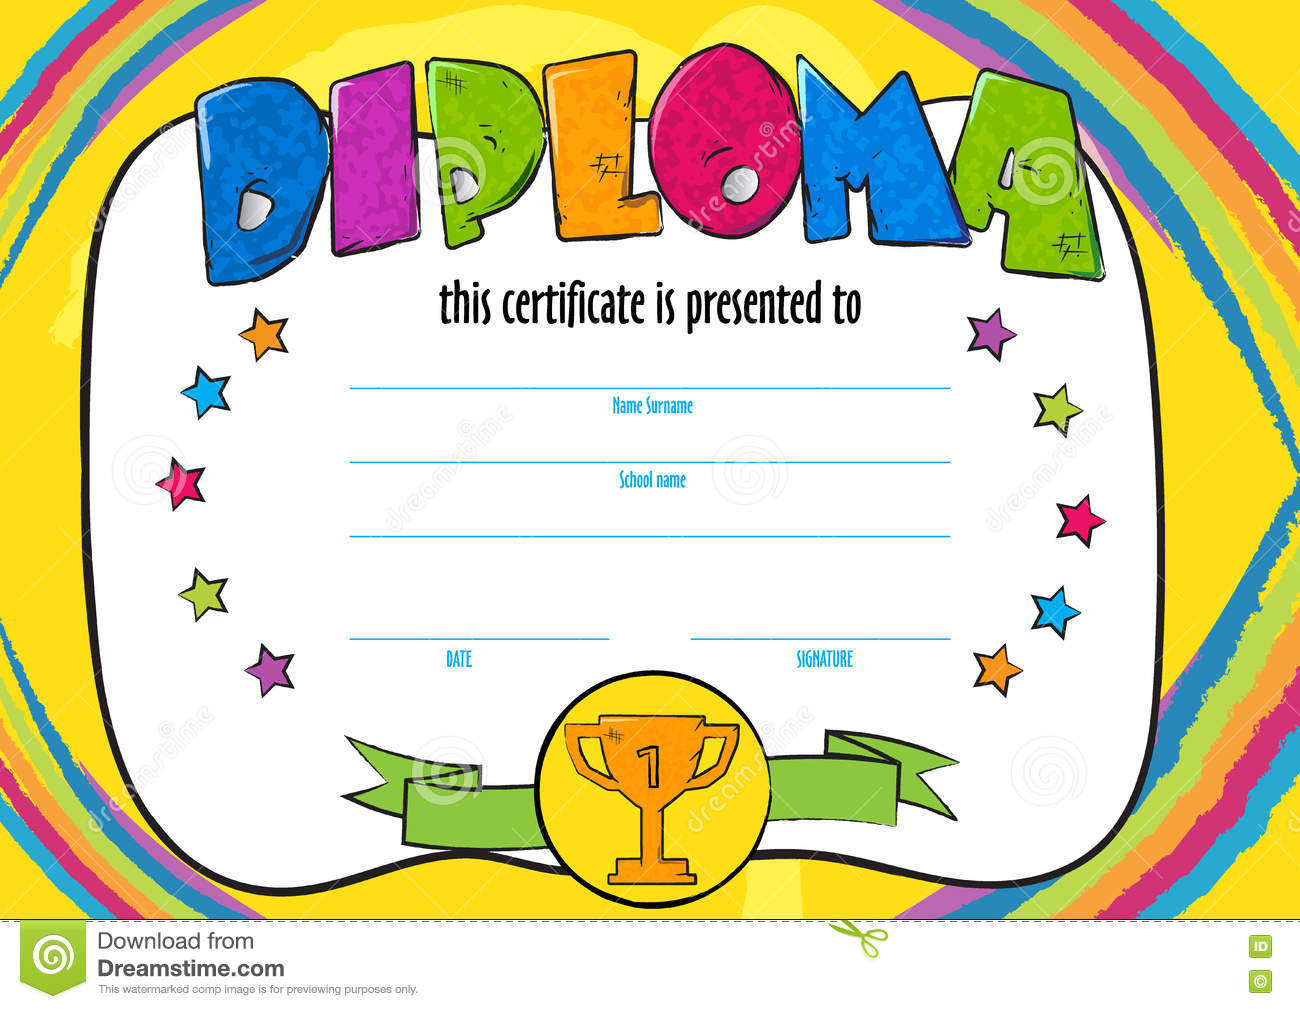 Template vector of child diploma or certificate to be awarded template vector of child diploma or certificate to be awarded yadclub Images